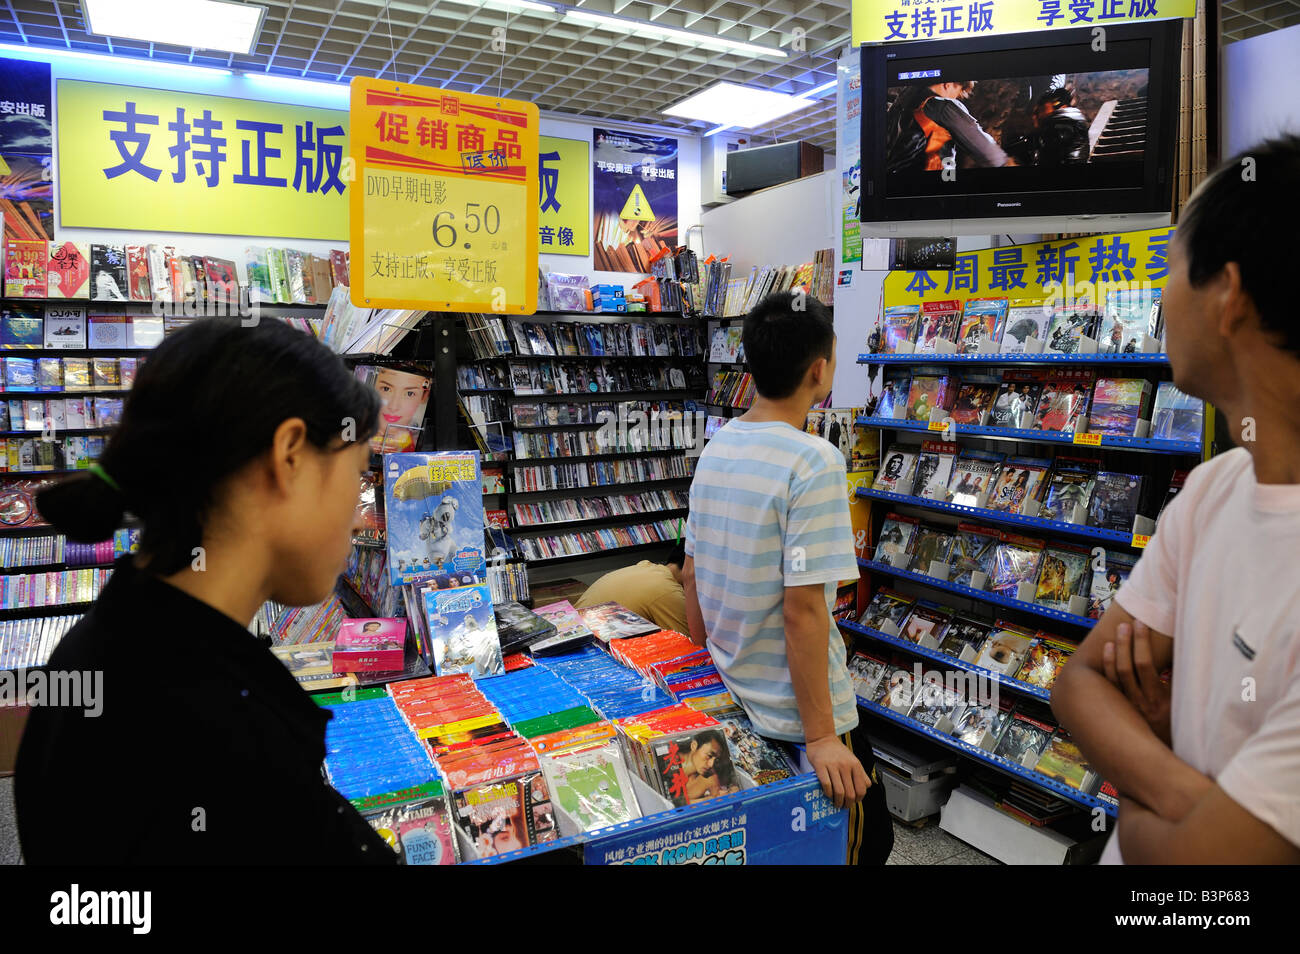 DVDs are on sale in a supermarket in Beijing, China. 09-Sep-2008 - Stock Image